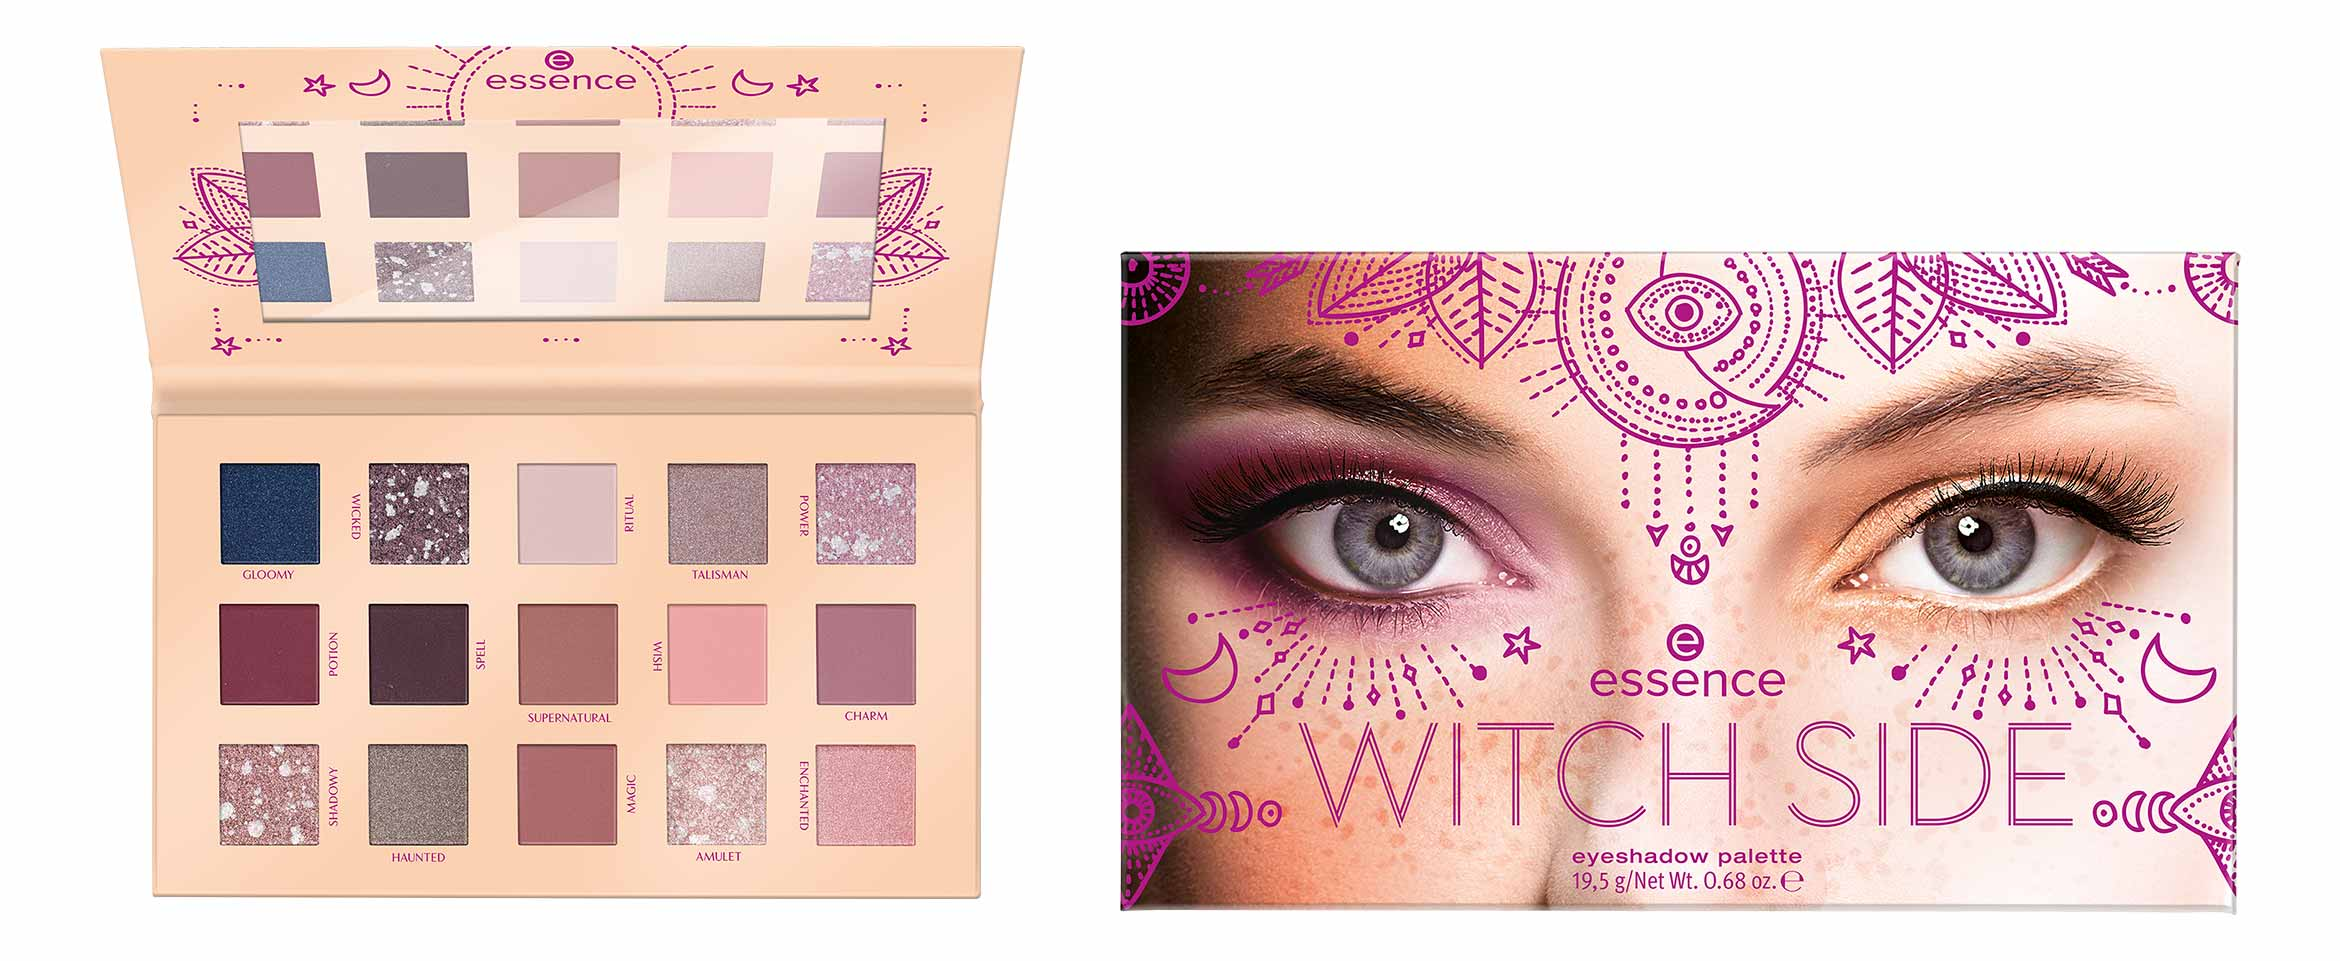 essence-witch-side-eyeshadow-palette